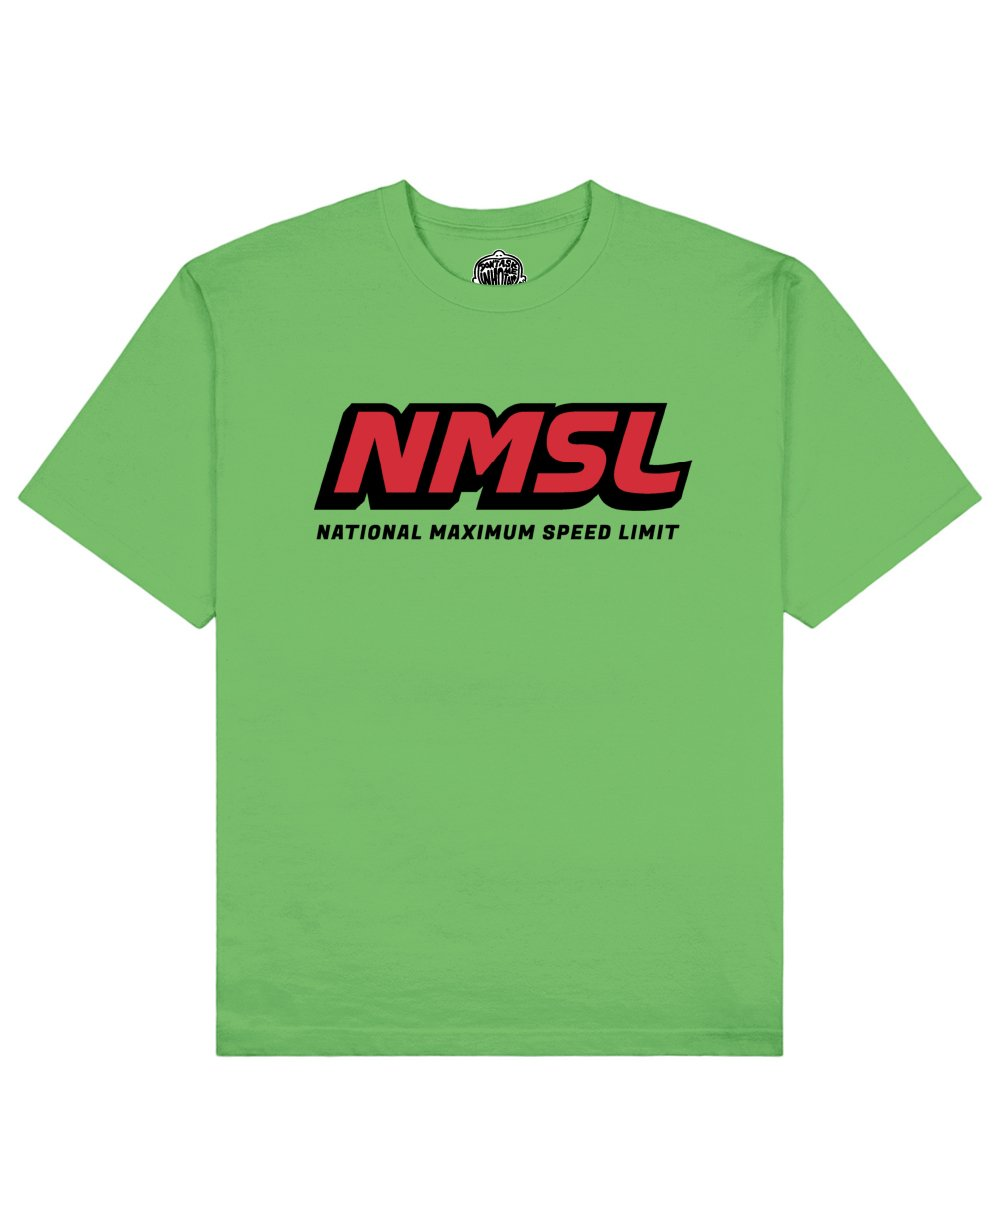 NMSL Print T-shirt in Green - T-Shirts - Don't ask me who I am - BRANMA